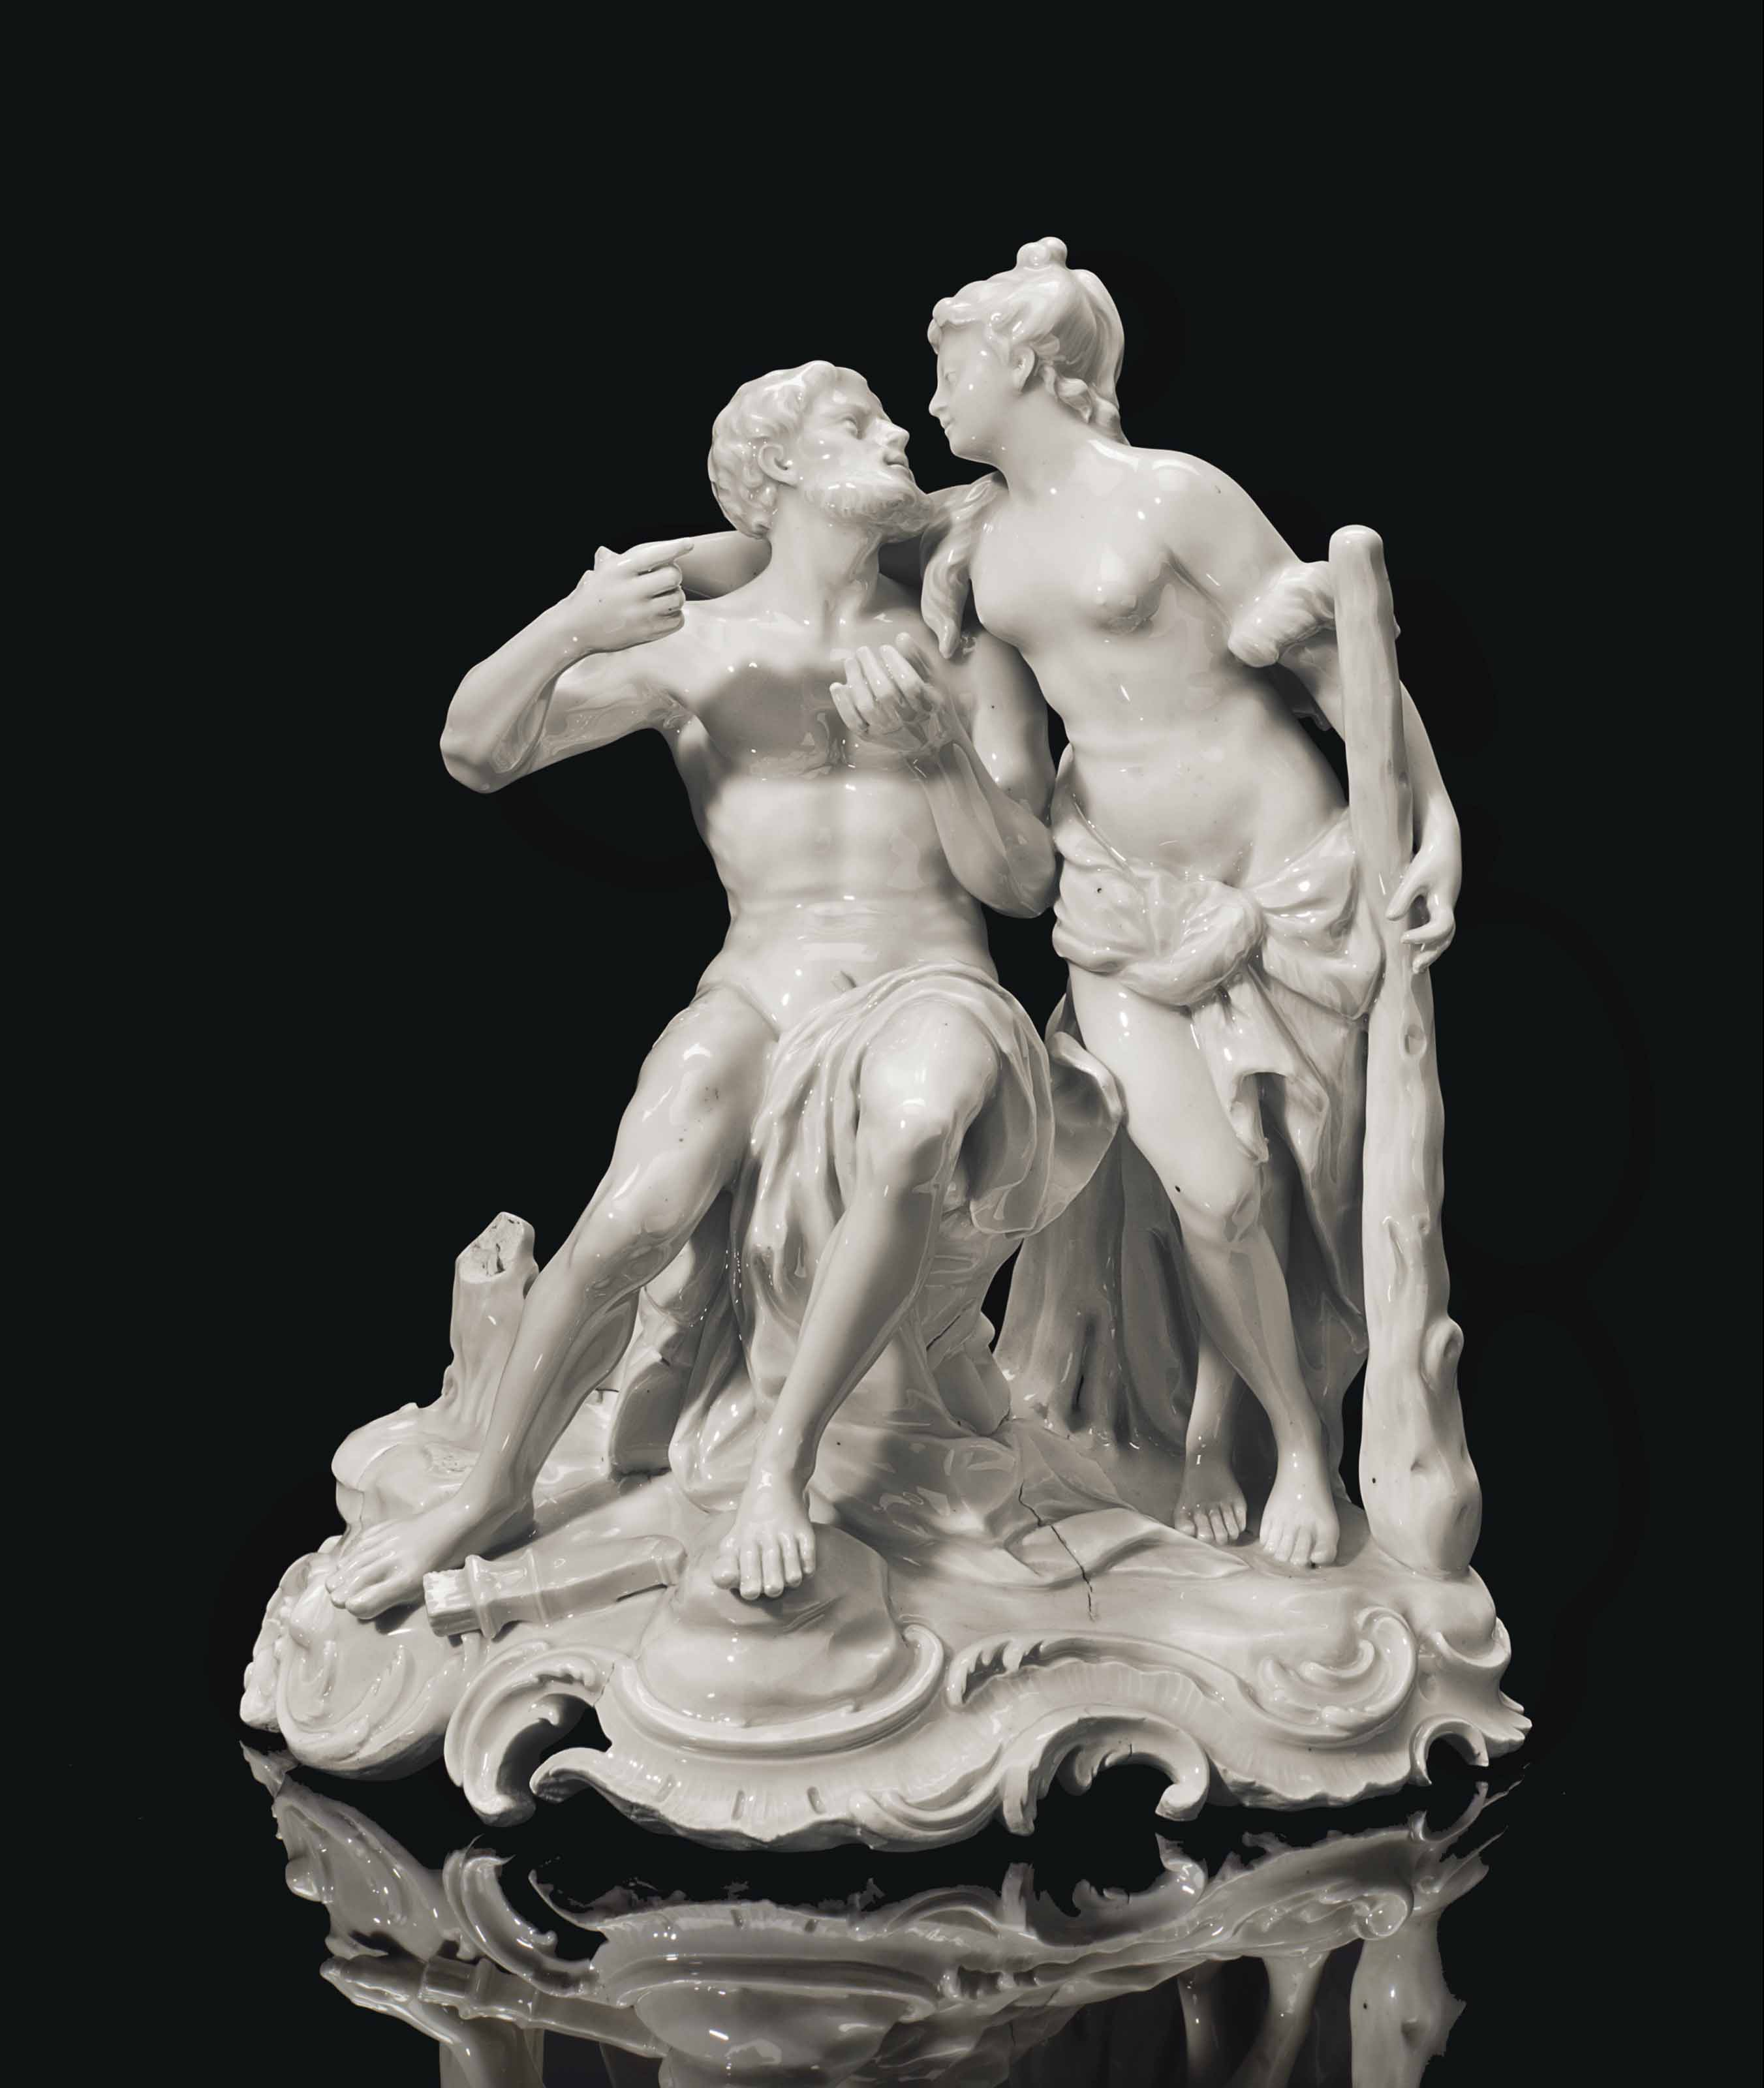 A LUDWIGSBURG PORCELAIN WHITE-GLAZED FIGURE GROUP OF HERCULES AND OMPHALE